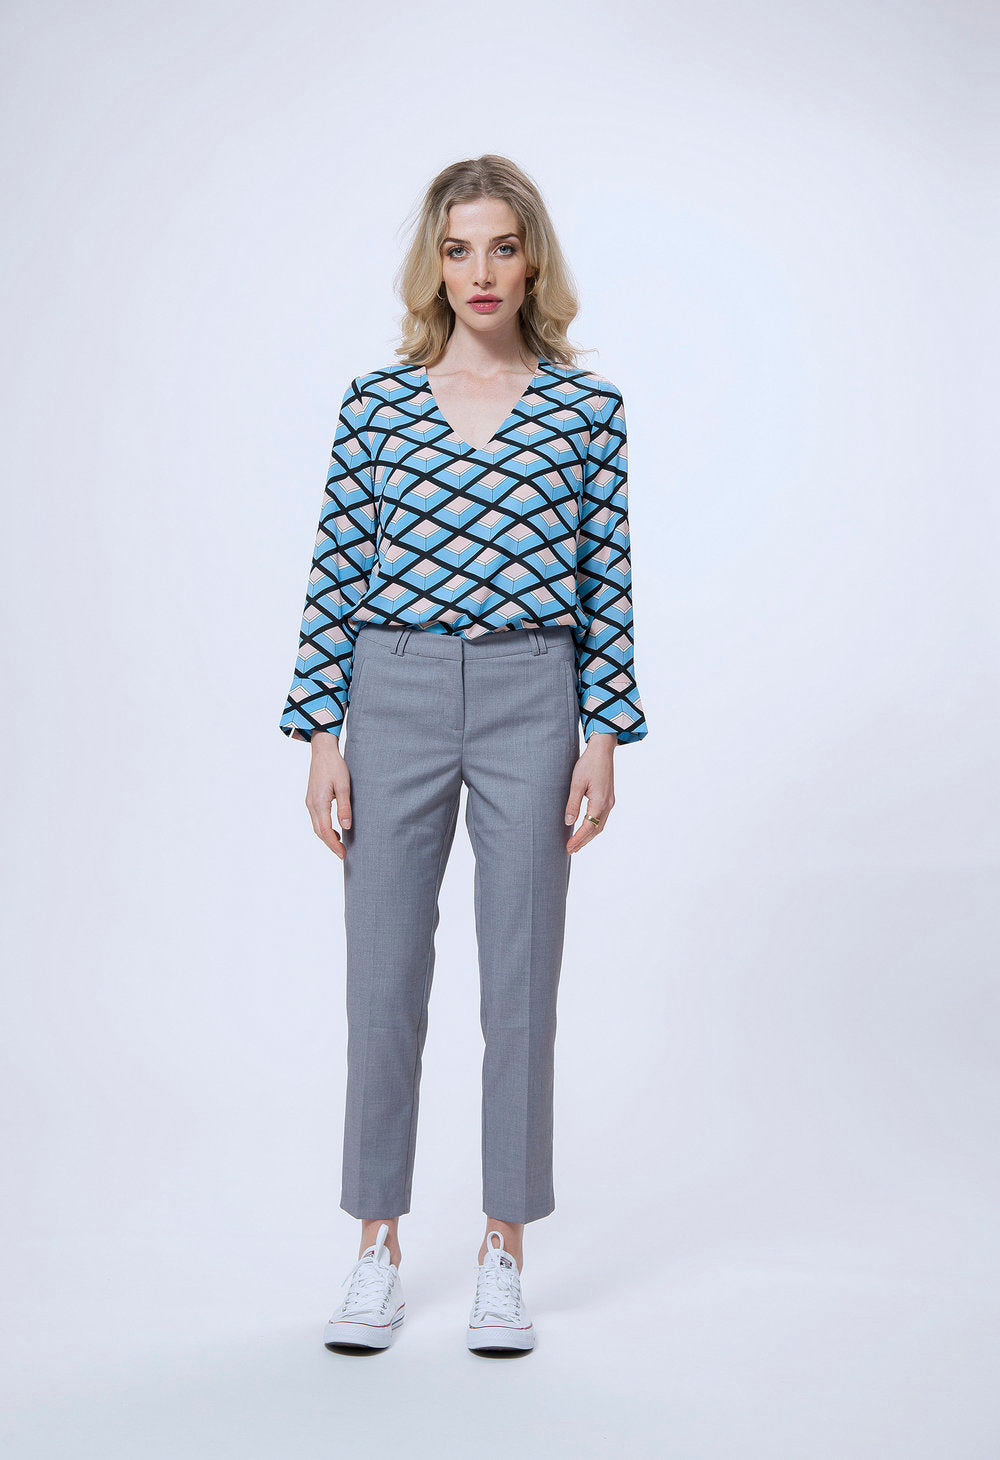 197 michelle top - blue deco & 174 rebecca pant - grey.jpg